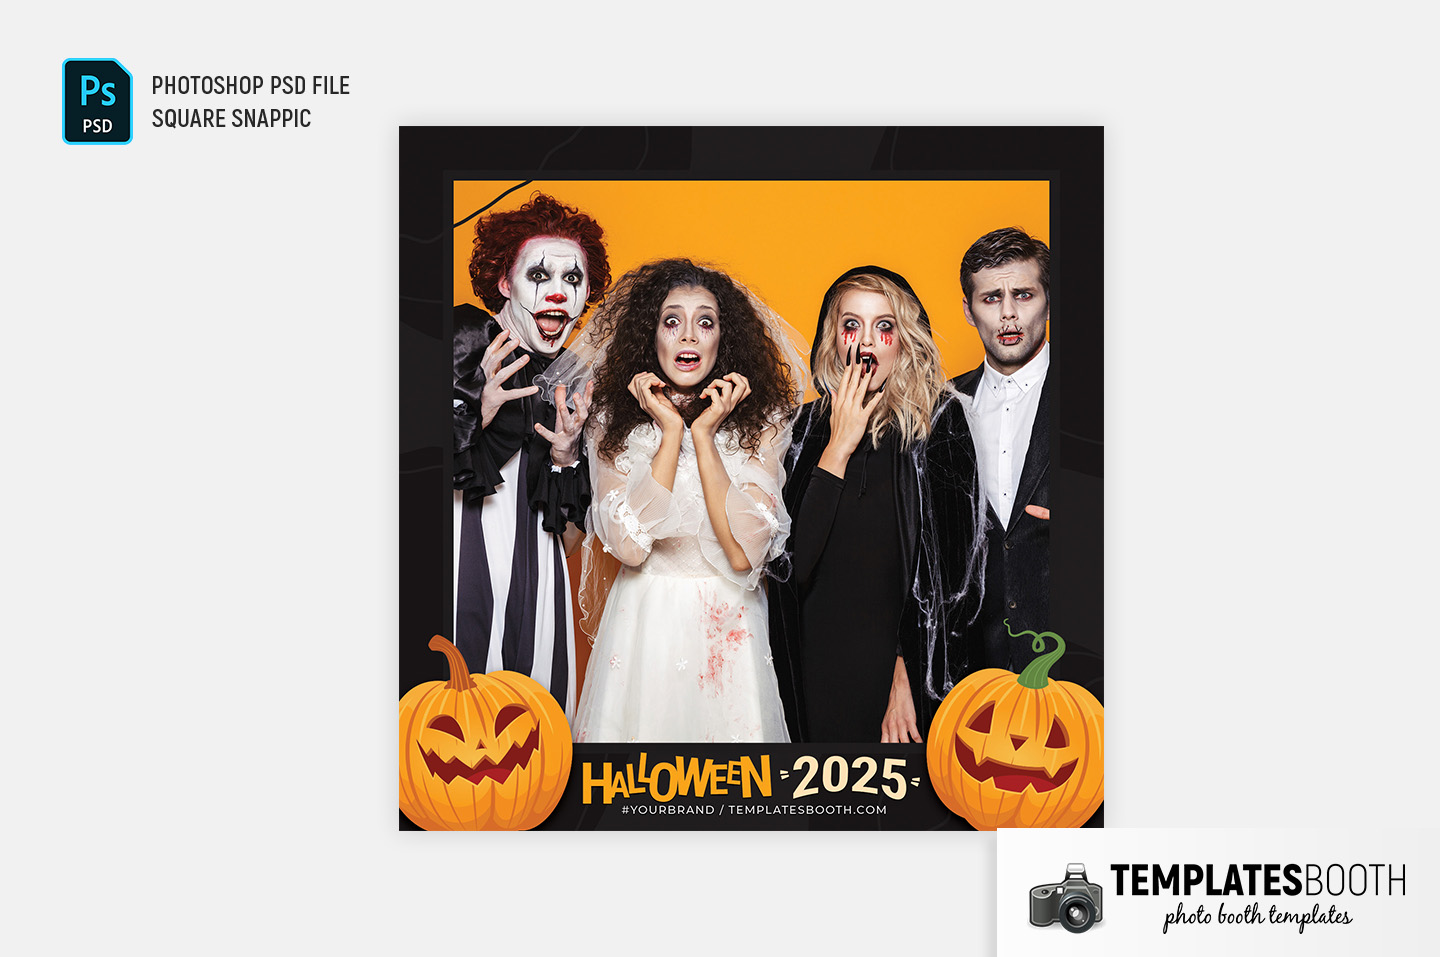 Halloween Party Photo Booth Template (Snappic)